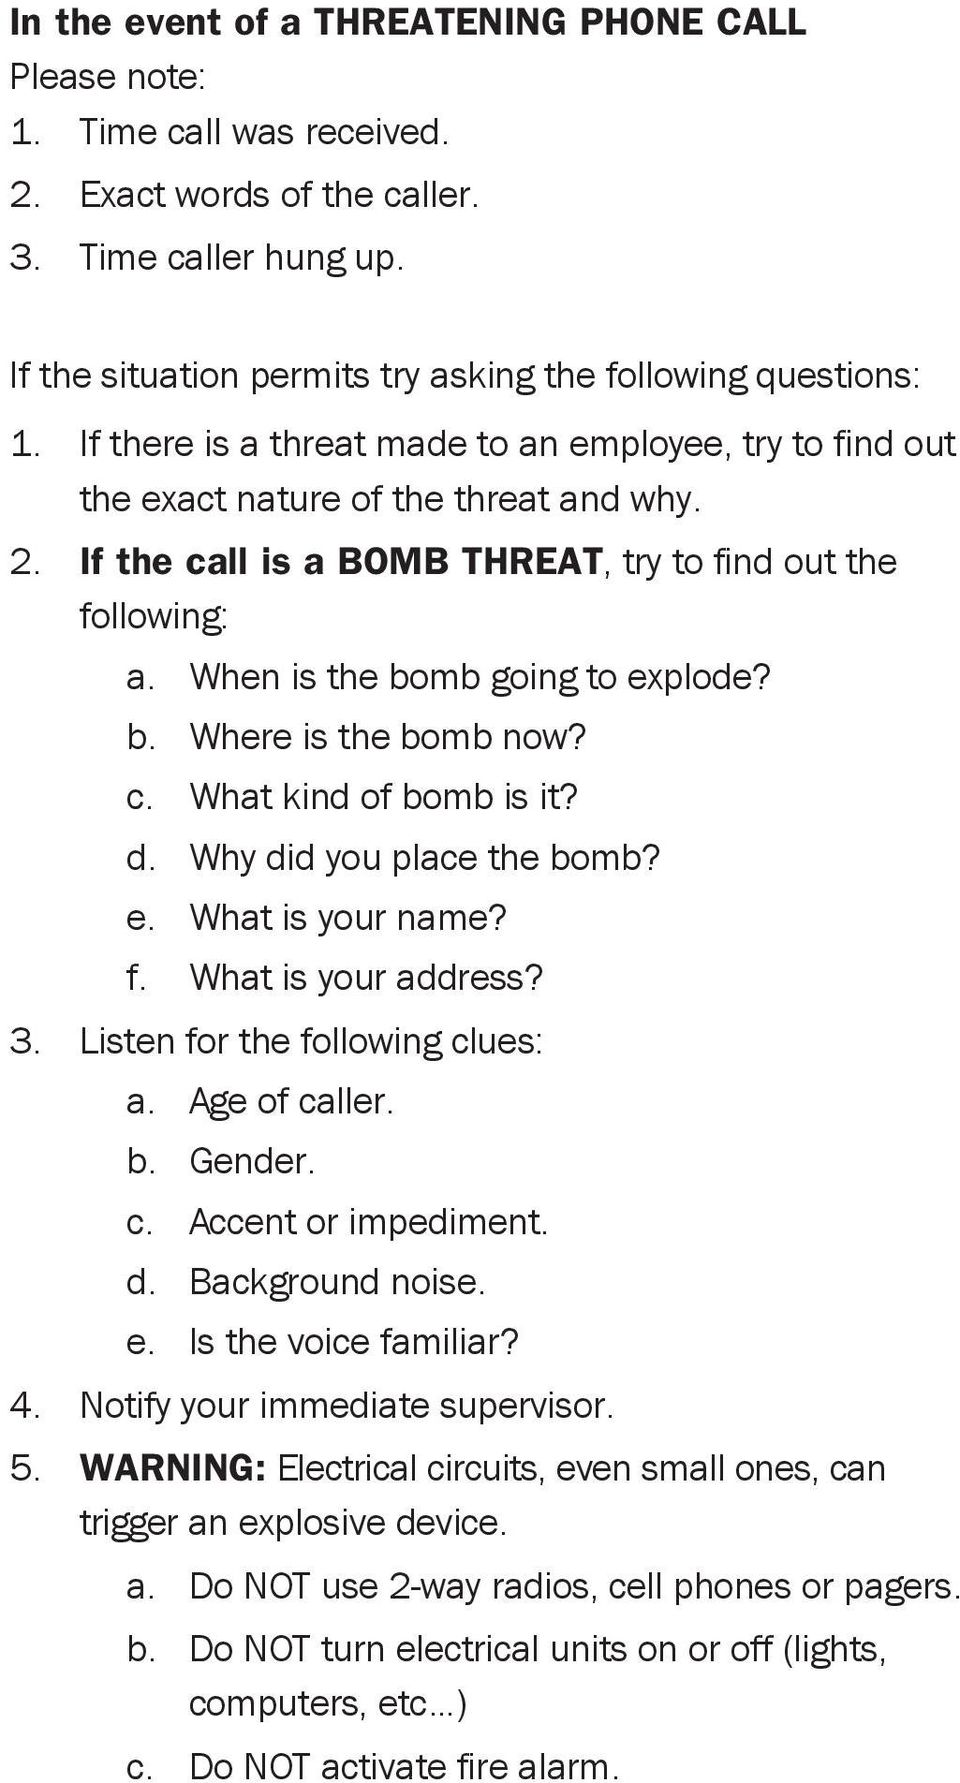 b. Where is the bomb now? c. What kind of bomb is it? d. Why did you place the bomb? e. What is your name? f. What is your address? 3. Listen for the following clues: a. Age of caller. b. Gender. c. Accent or impediment.